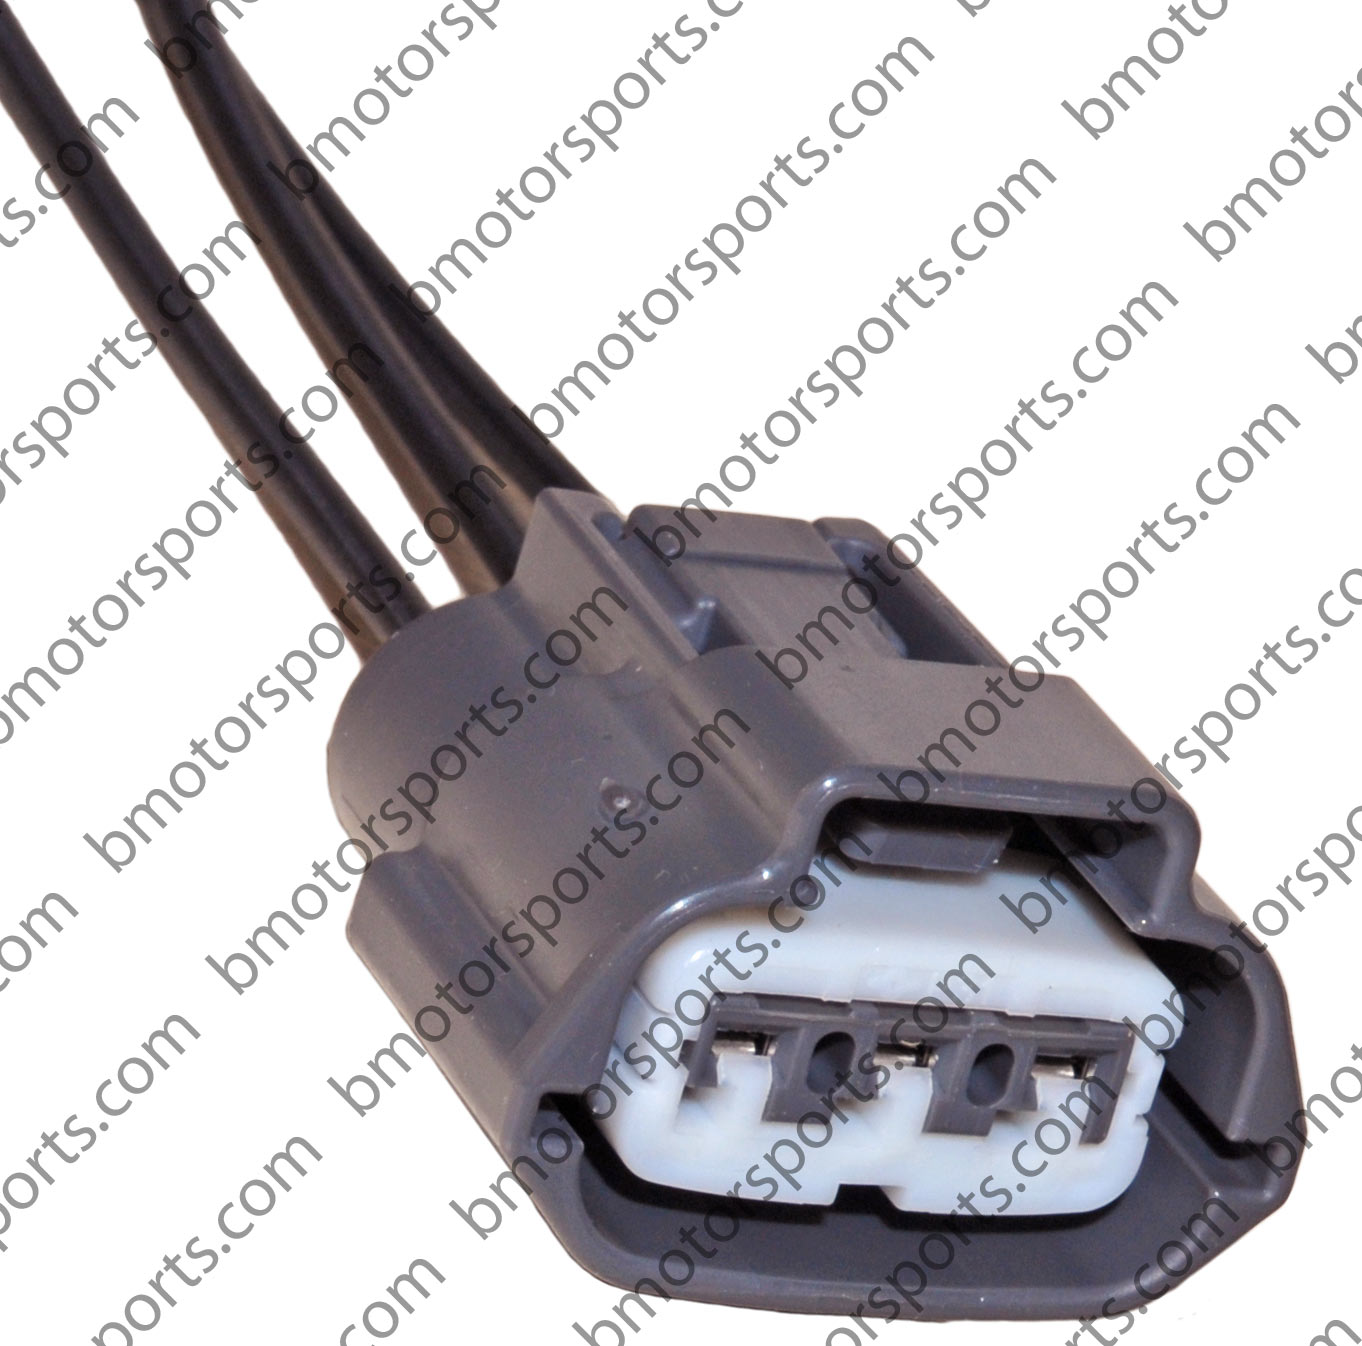 3 Way Plug connector pigtail for Nissan and Mazda coils